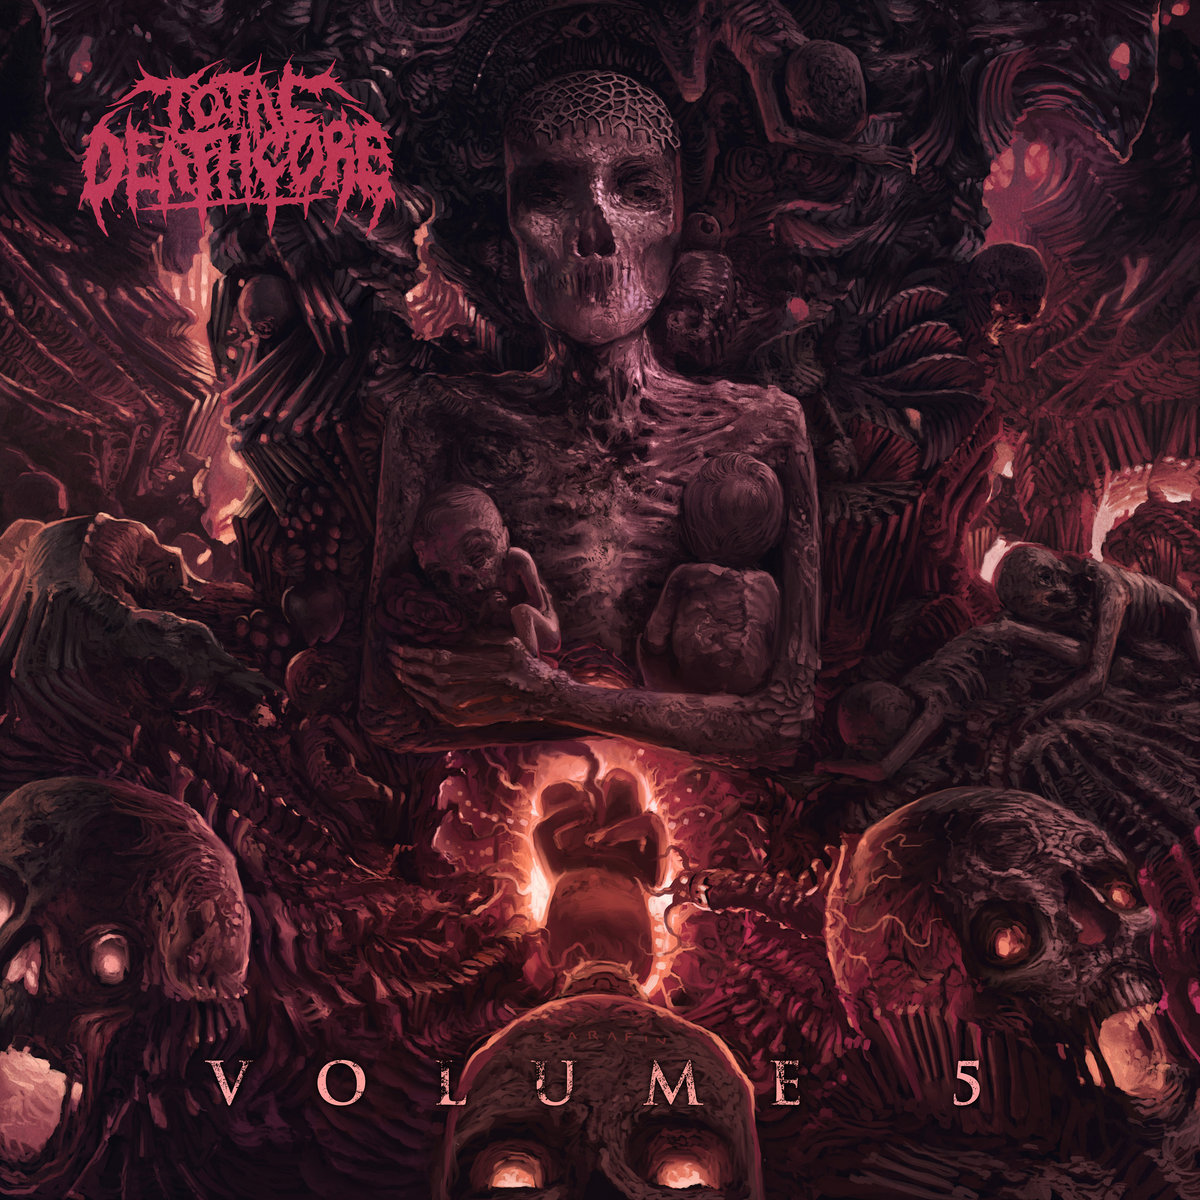 Total Deathcore Volume 5 | Total Deathcore: https://totaldeathcore.bandcamp.com/album/total-deathcore-volume-5